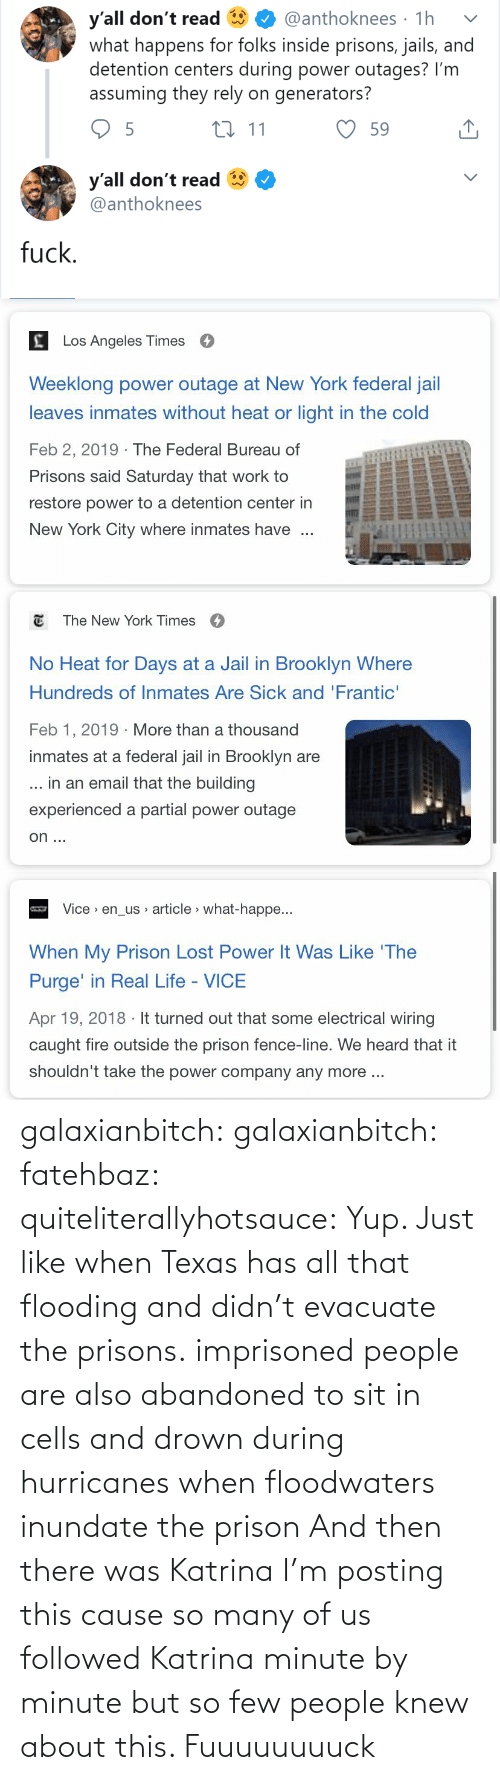 Jail: y'all don't read  what happens for folks inside prisons, jails, and  detention centers during power outages? I'm  assuming they rely on generators?  @anthoknees · 1h  27 11  59  y'all don't read  @anthoknees  fuck.   Los Angeles Times  Weeklong power outage at New York federal jail  leaves inmates without heat or light in the cold  Feb 2, 2019 · The Federal Bureau of  Prisons said Saturday that work to  restore power to a detention center in  New York City where inmates have   E The New York Times  O  No Heat for Days at a Jail in Brooklyn Where  Hundreds of Inmates Are Sick and 'Frantic'  Feb 1, 2019 · More than a thousand  inmates at a federal jail in Brooklyn are  ... in an email that the building  experienced a partial power outage  on ...   Vice > en_us article > what-happe...  When My Prison Lost Power It Was Like 'The  Purge' in Real Life - VICE  Apr 19, 2018 · It turned out that some electrical wiring  caught fire outside the prison fence-line. We heard that it  shouldn't take the power company any more .. galaxianbitch: galaxianbitch:   fatehbaz:  quiteliterallyhotsauce:   Yup. Just like when Texas has all that flooding and didn't evacuate the prisons.   imprisoned people are also abandoned to sit in cells and drown during hurricanes when floodwaters inundate the prison   And then there was Katrina        I'm posting this cause so many of us followed Katrina minute by minute but so few people knew about this.    Fuuuuuuuuck